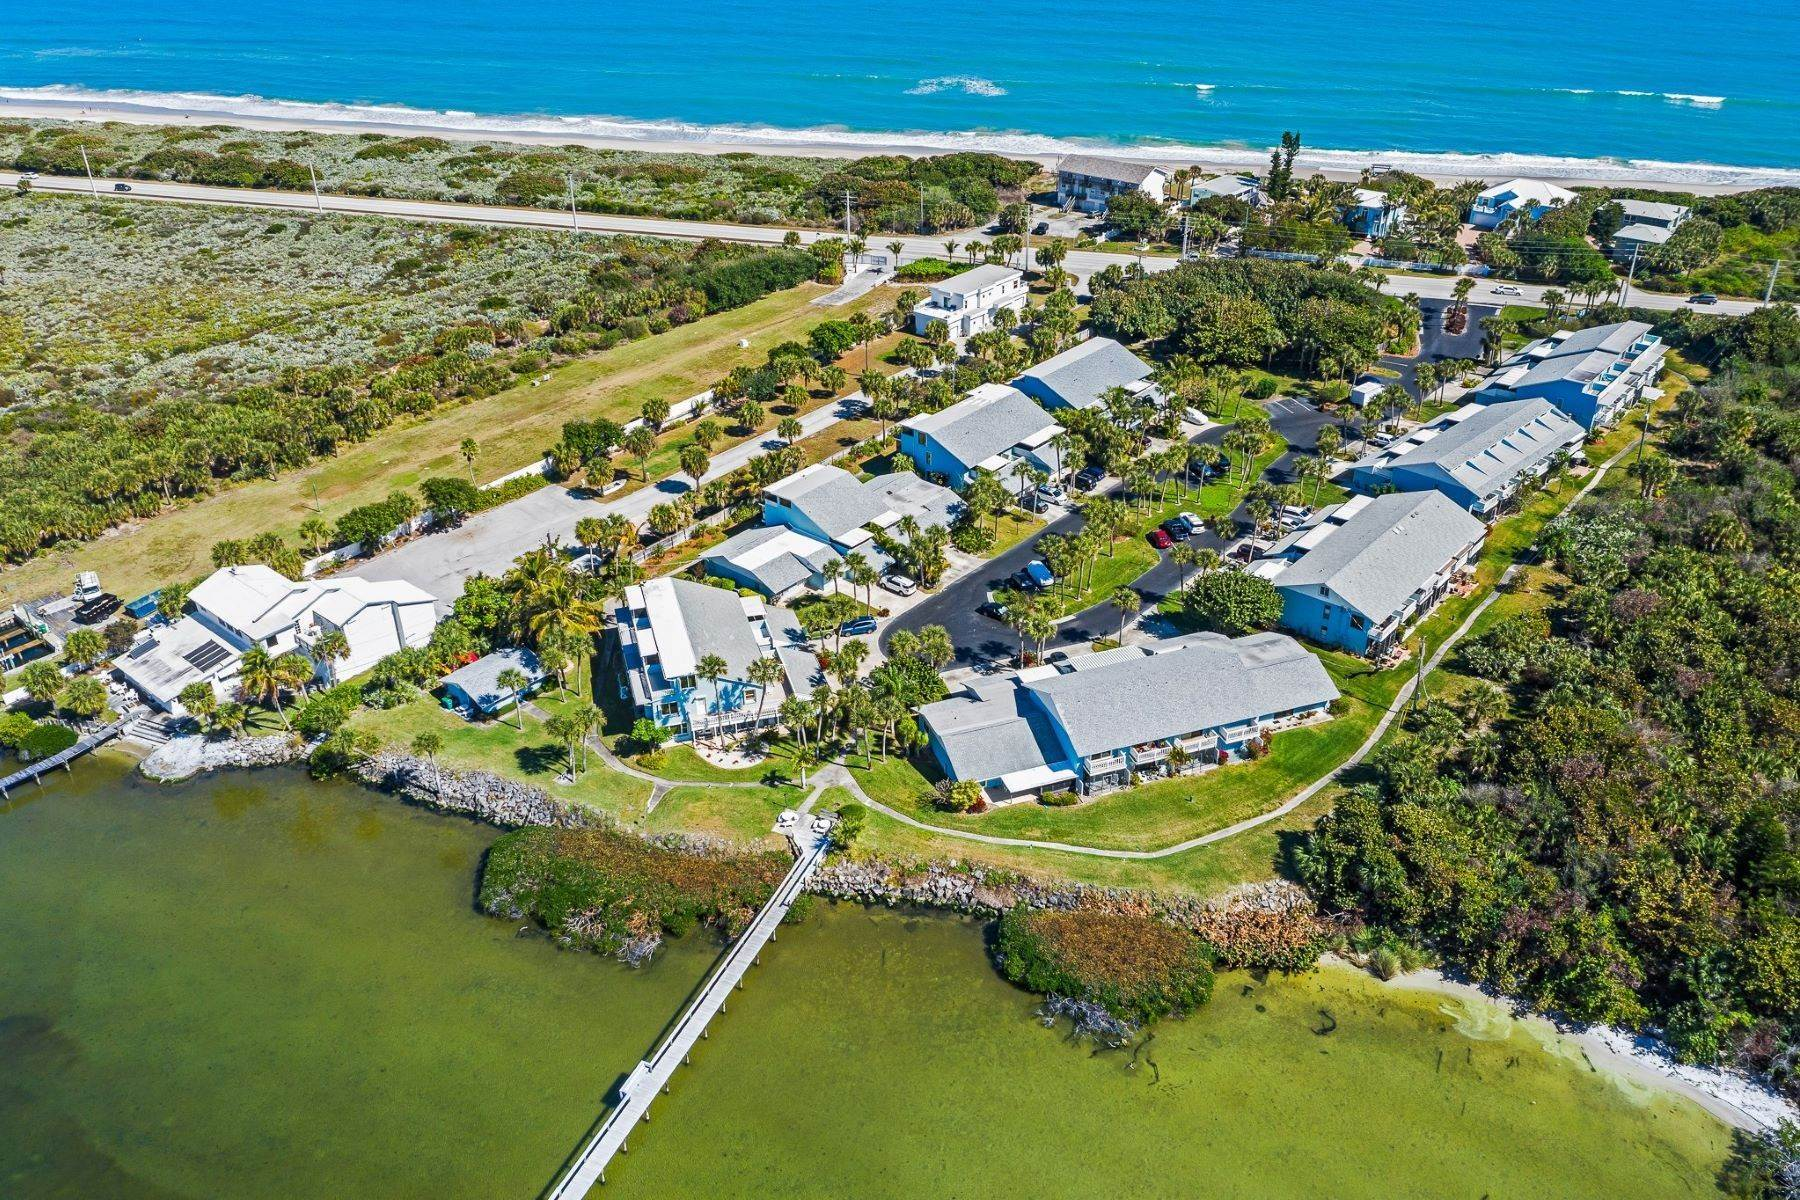 townhouses 为 销售 在 18 Cove Road, #18e, Melbourne Beach, FL 18 Cove Road, 18e 墨尔本海滩, 佛罗里达州 32951 美国